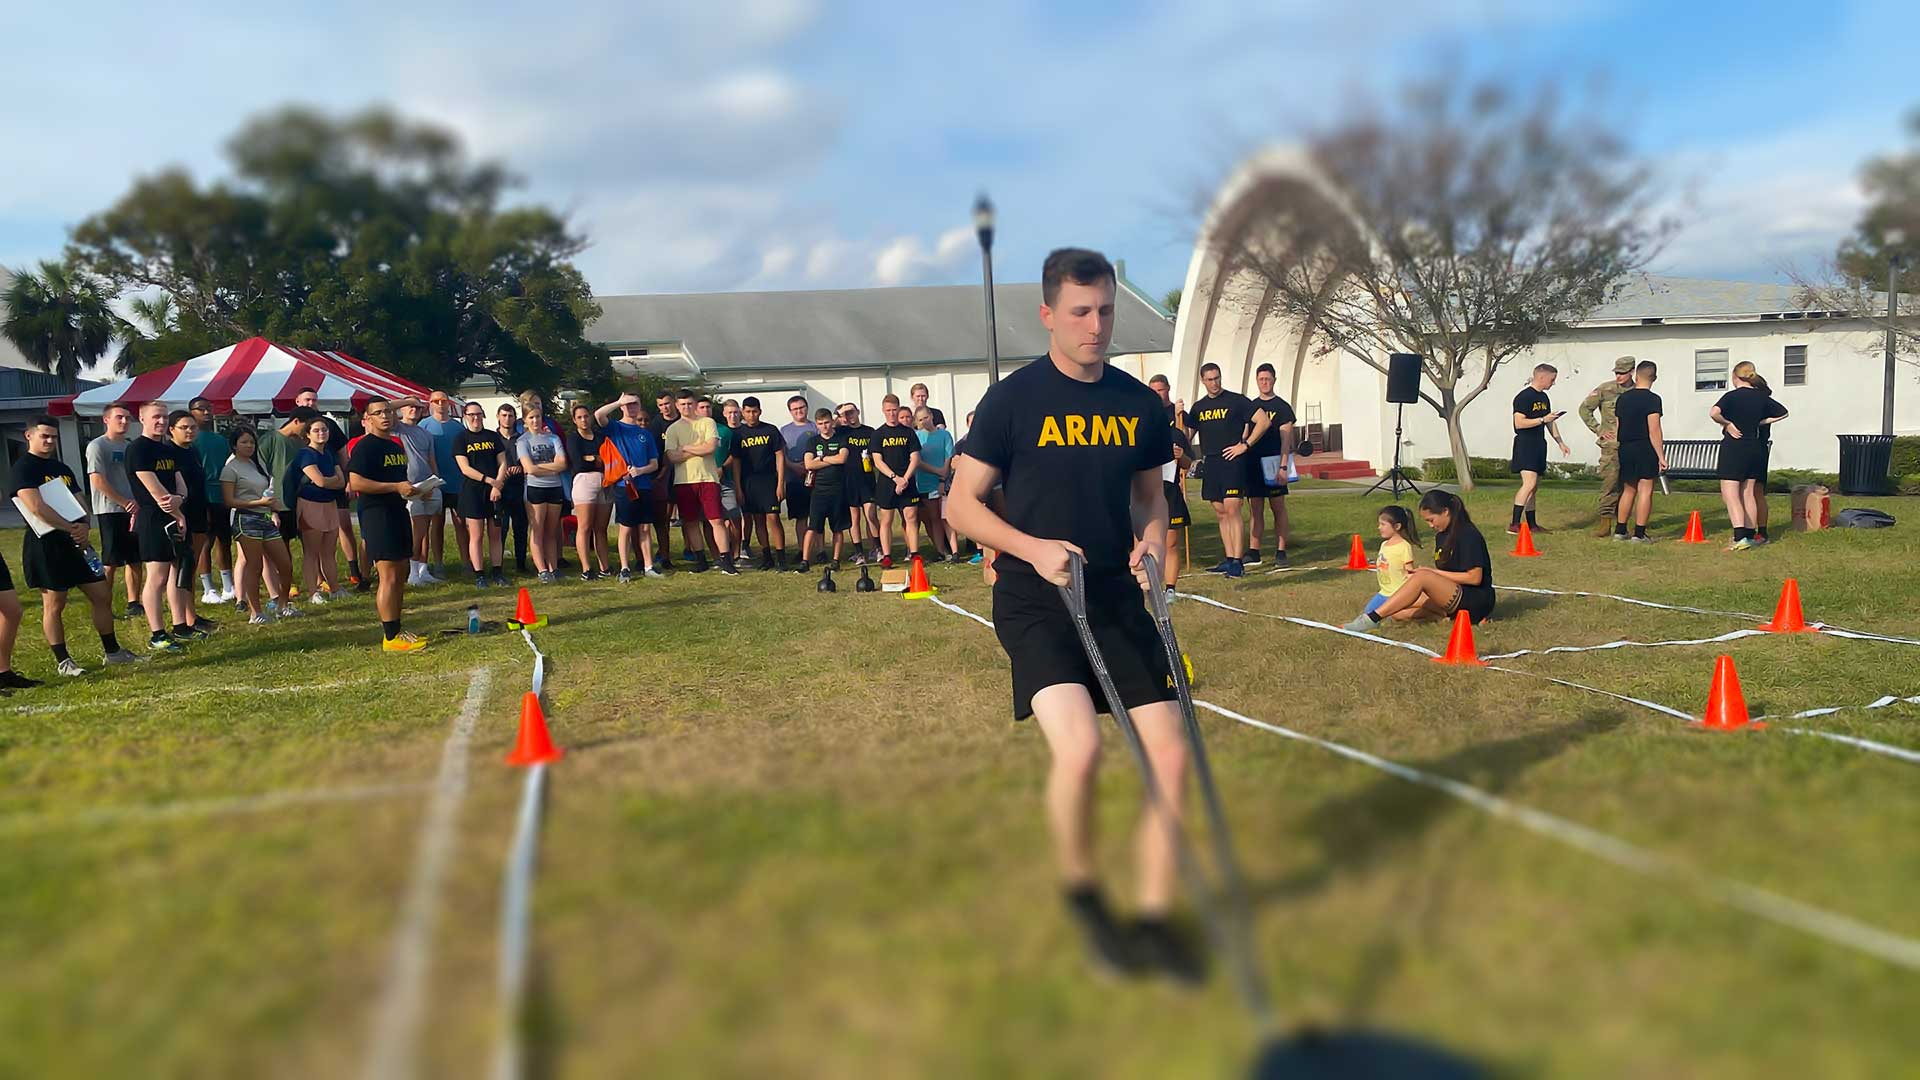 ROTC students competing in PT training